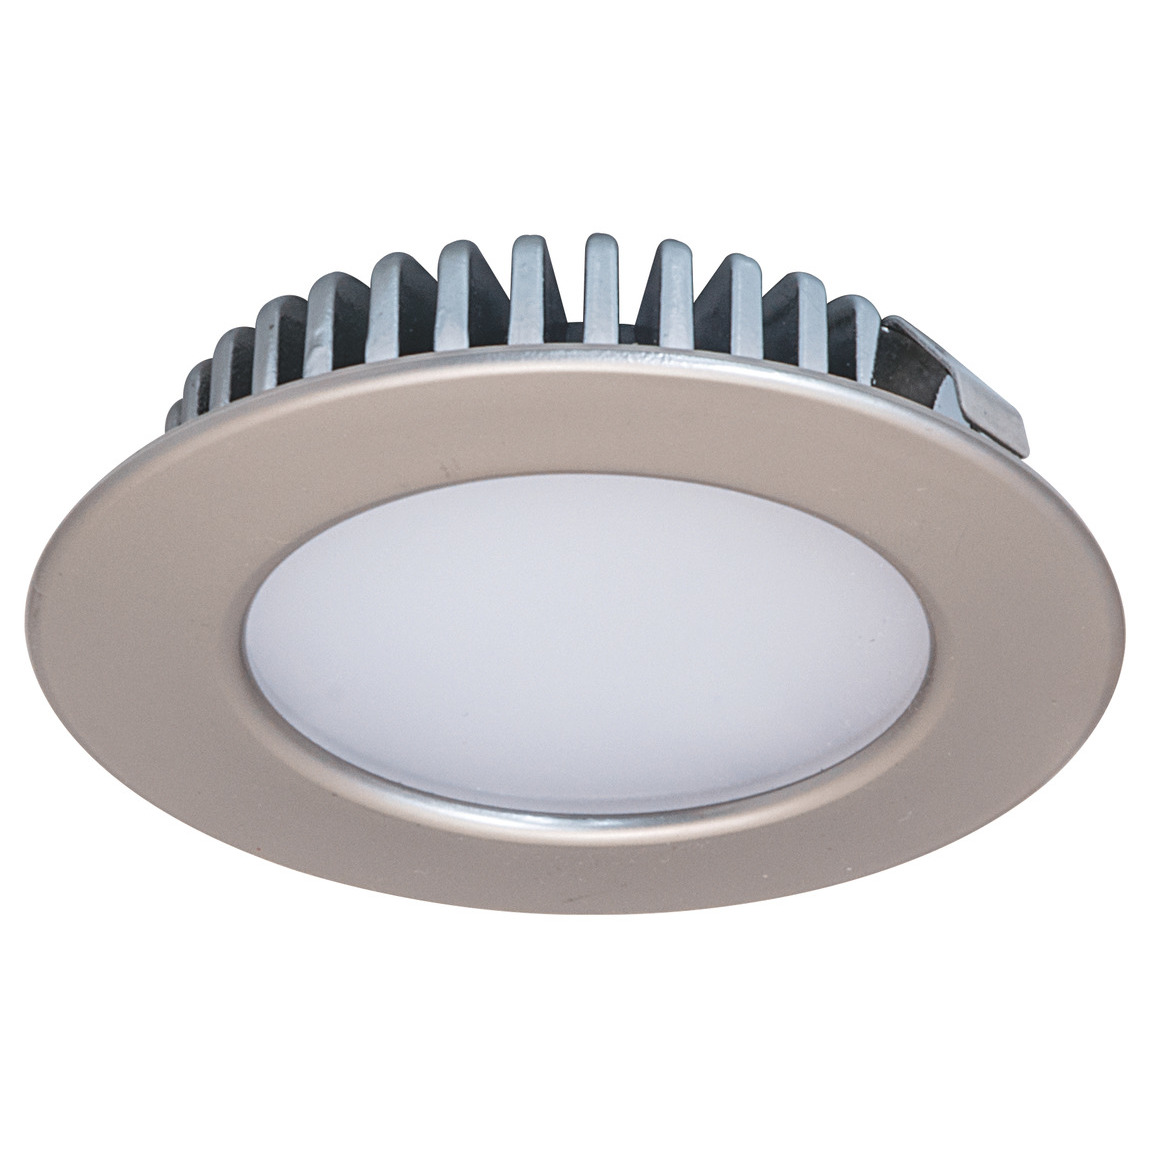 Hafele 833.72.280 Recess/Surface Mounted Downlight, Loox